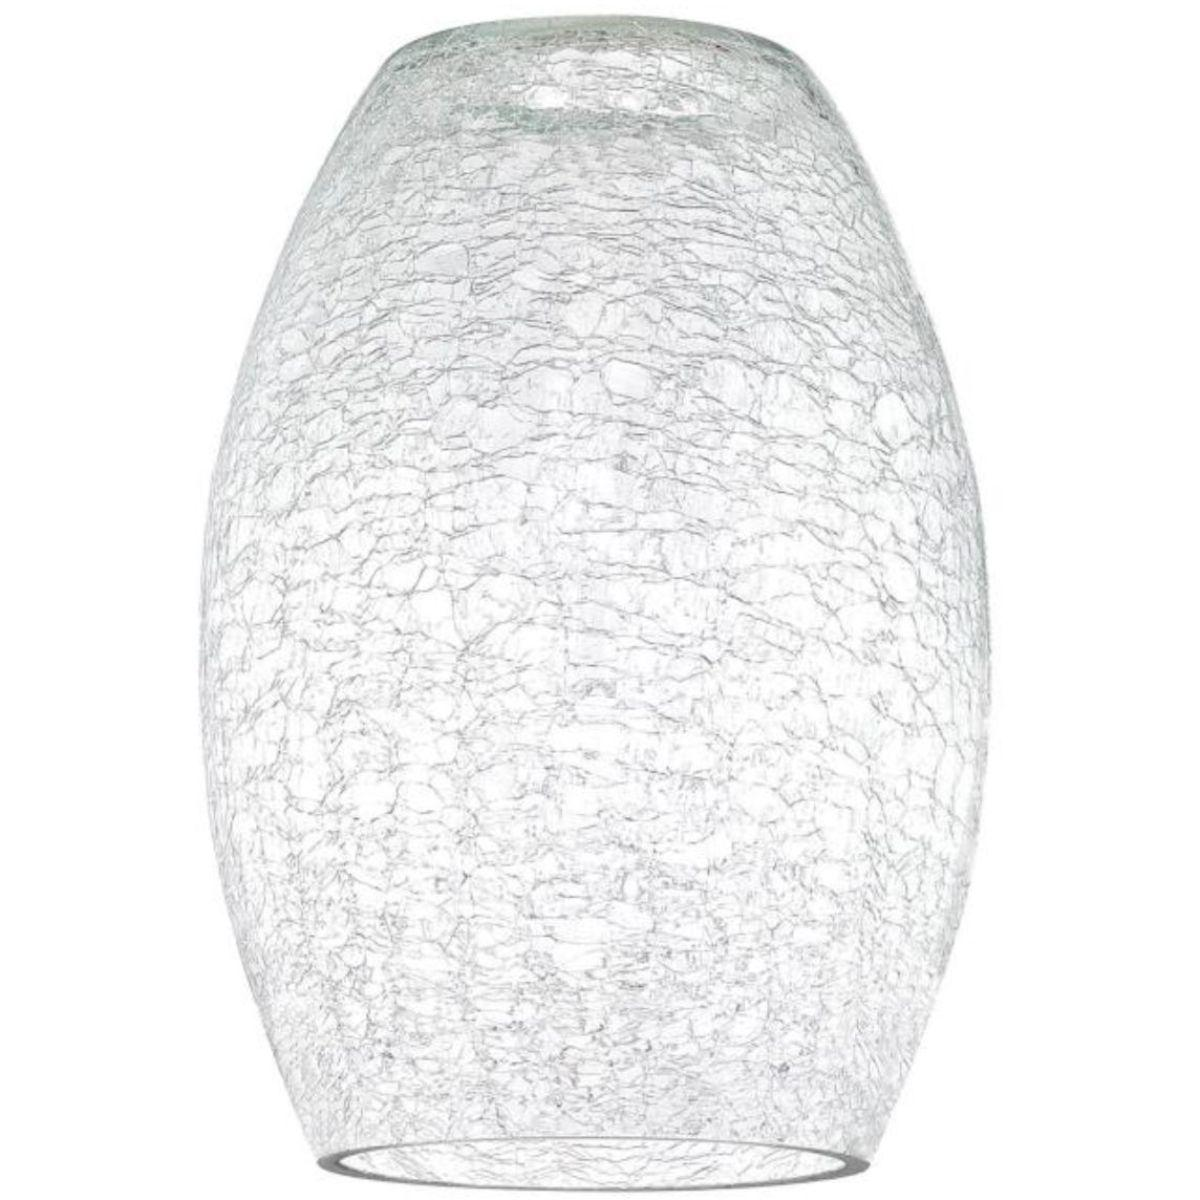 9 in. Round Clear Crackle Glass Shade with 2-1/4 in. Fitter - Clear Finish